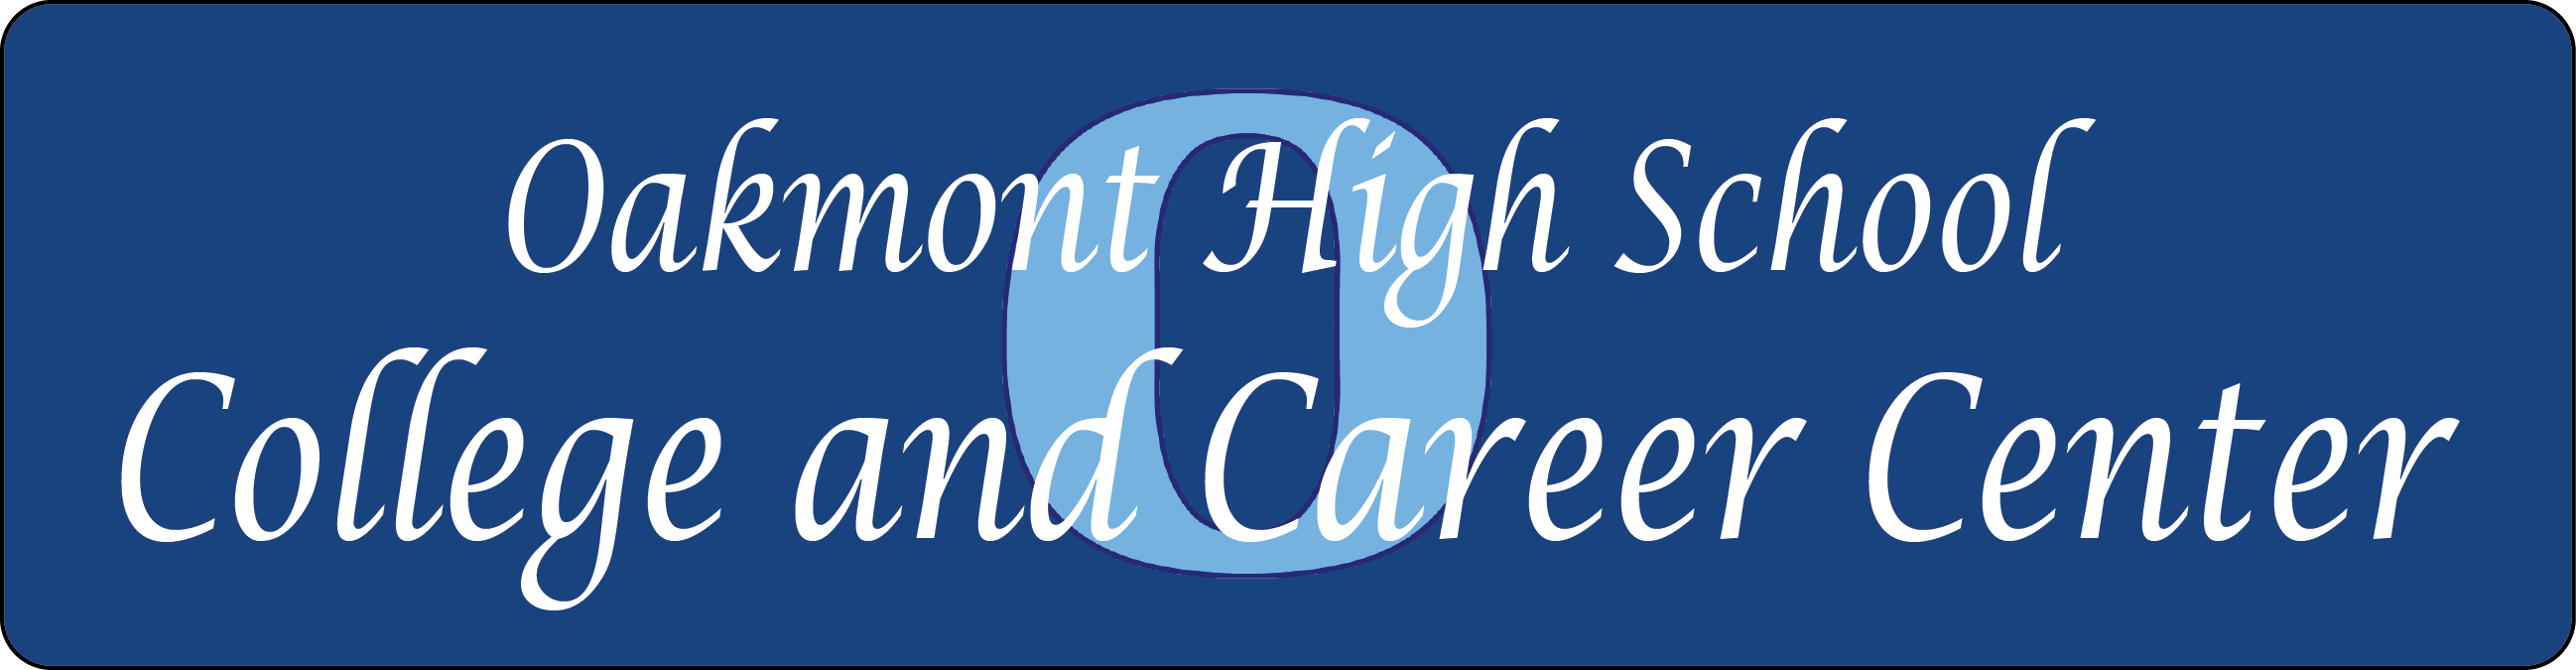 OHS College and Career Center banner